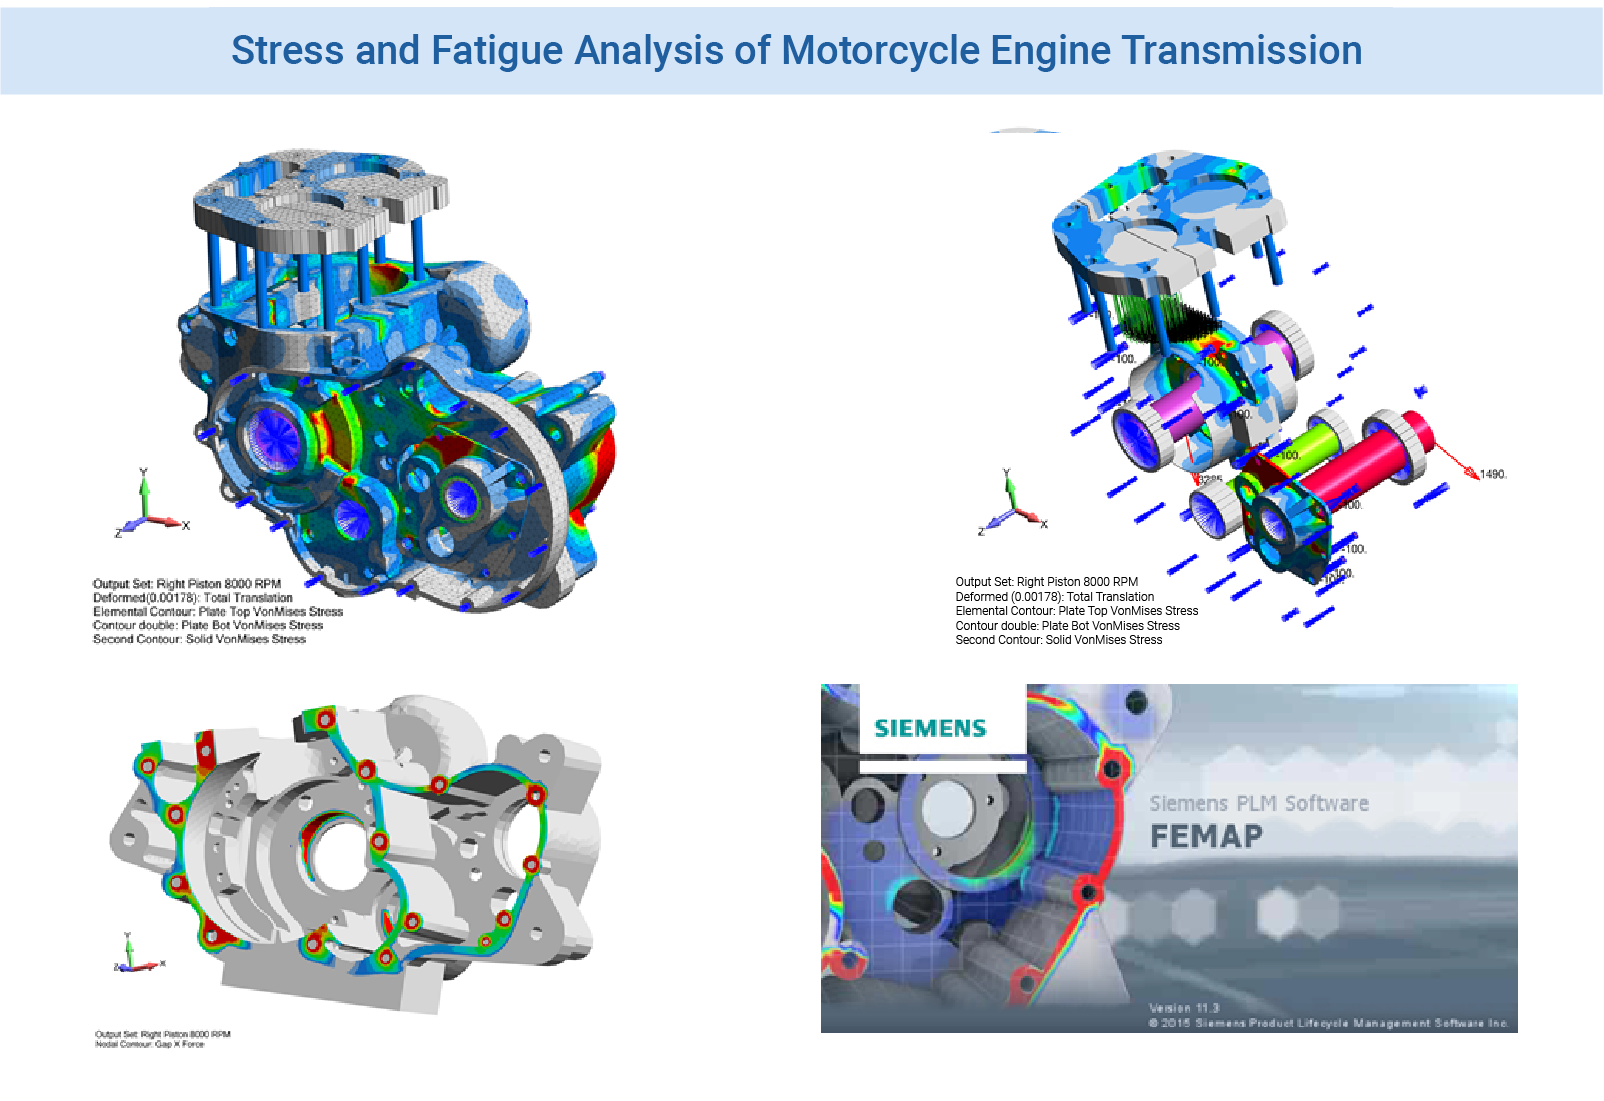 Figure 2 - Stress and Fatigue Analysis of Motorcycle Engine Transmission